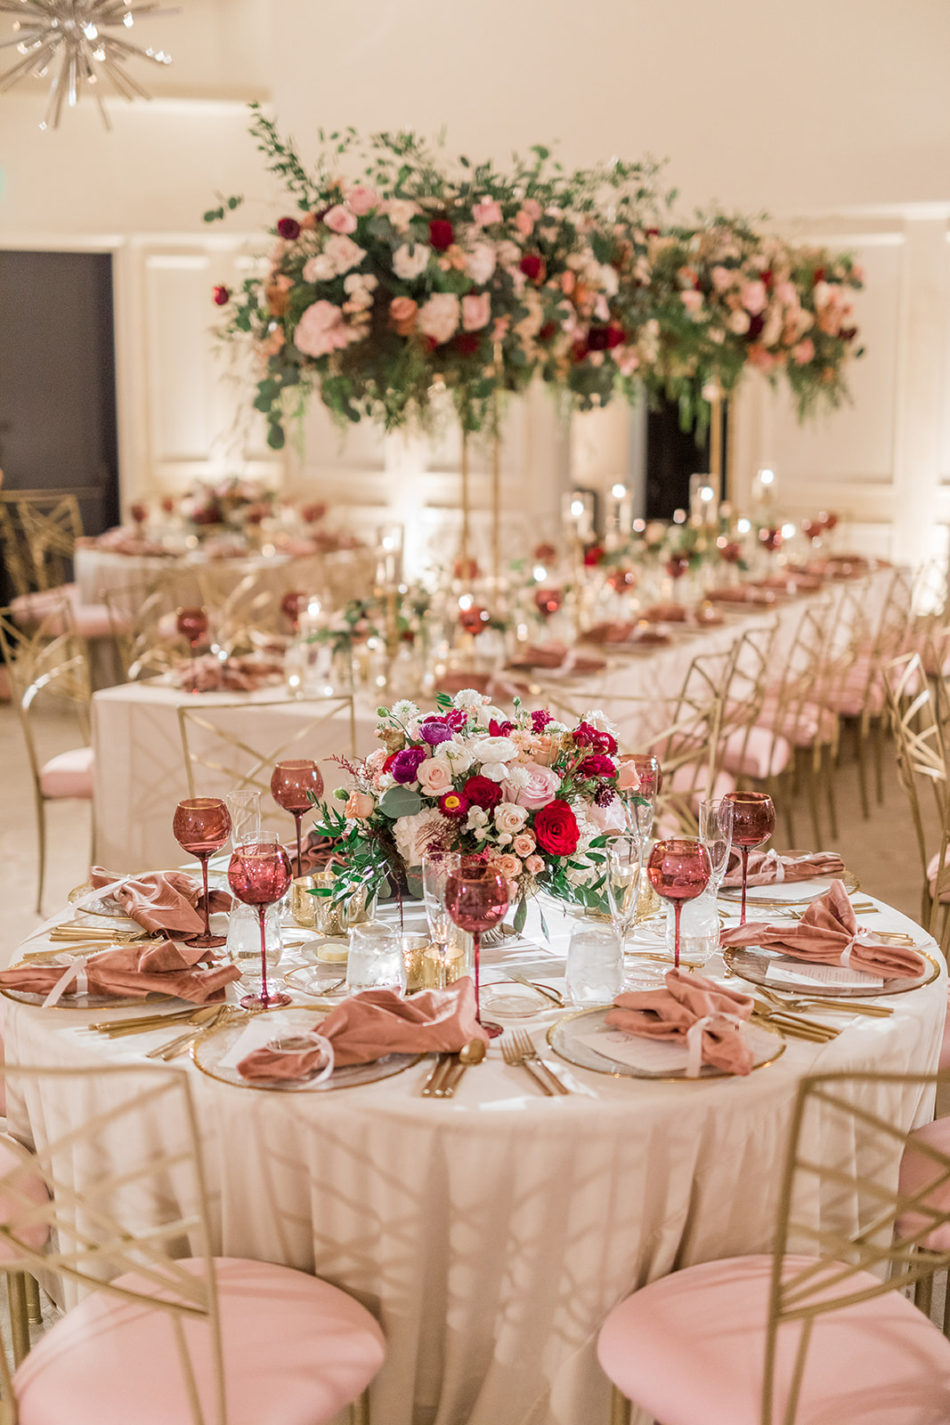 colorful wedding decor, colorful wedding reception, red and pink blooms, floral design, florist, wedding florist, wedding flowers, orange county weddings, orange county wedding florist, orange county florist, orange county floral design, flowers by cina